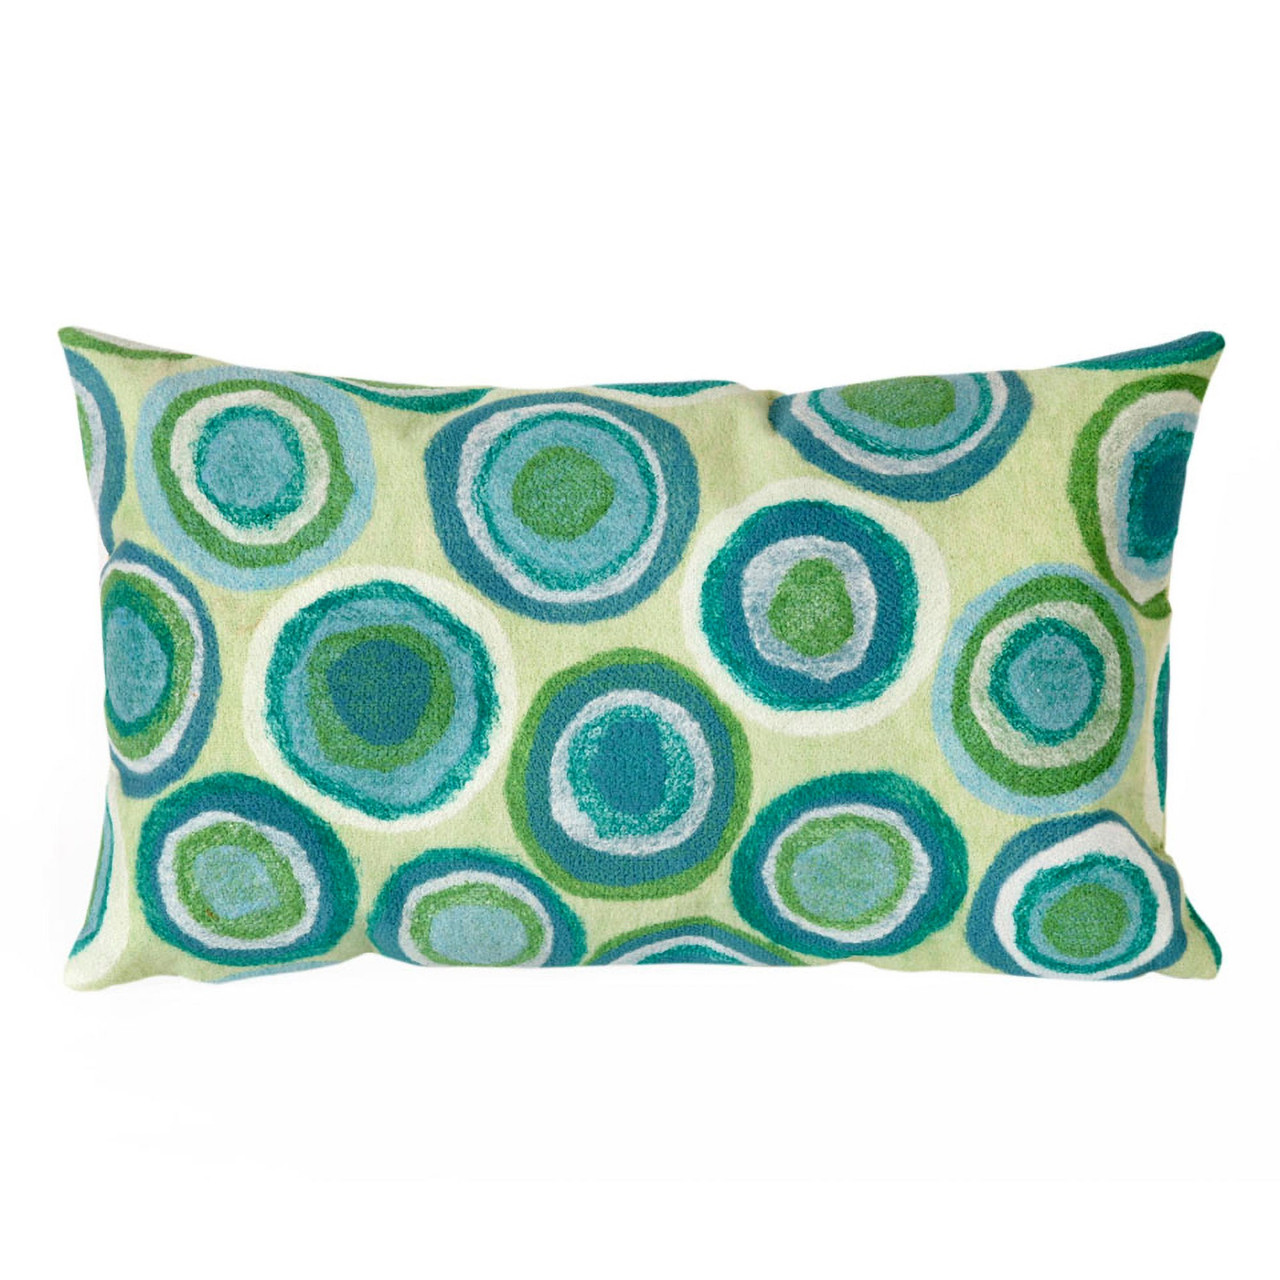 Visions II Spa Colored Puddle Dots Indoor/Outdoor Throw Pillows - 2 Sizes Avail